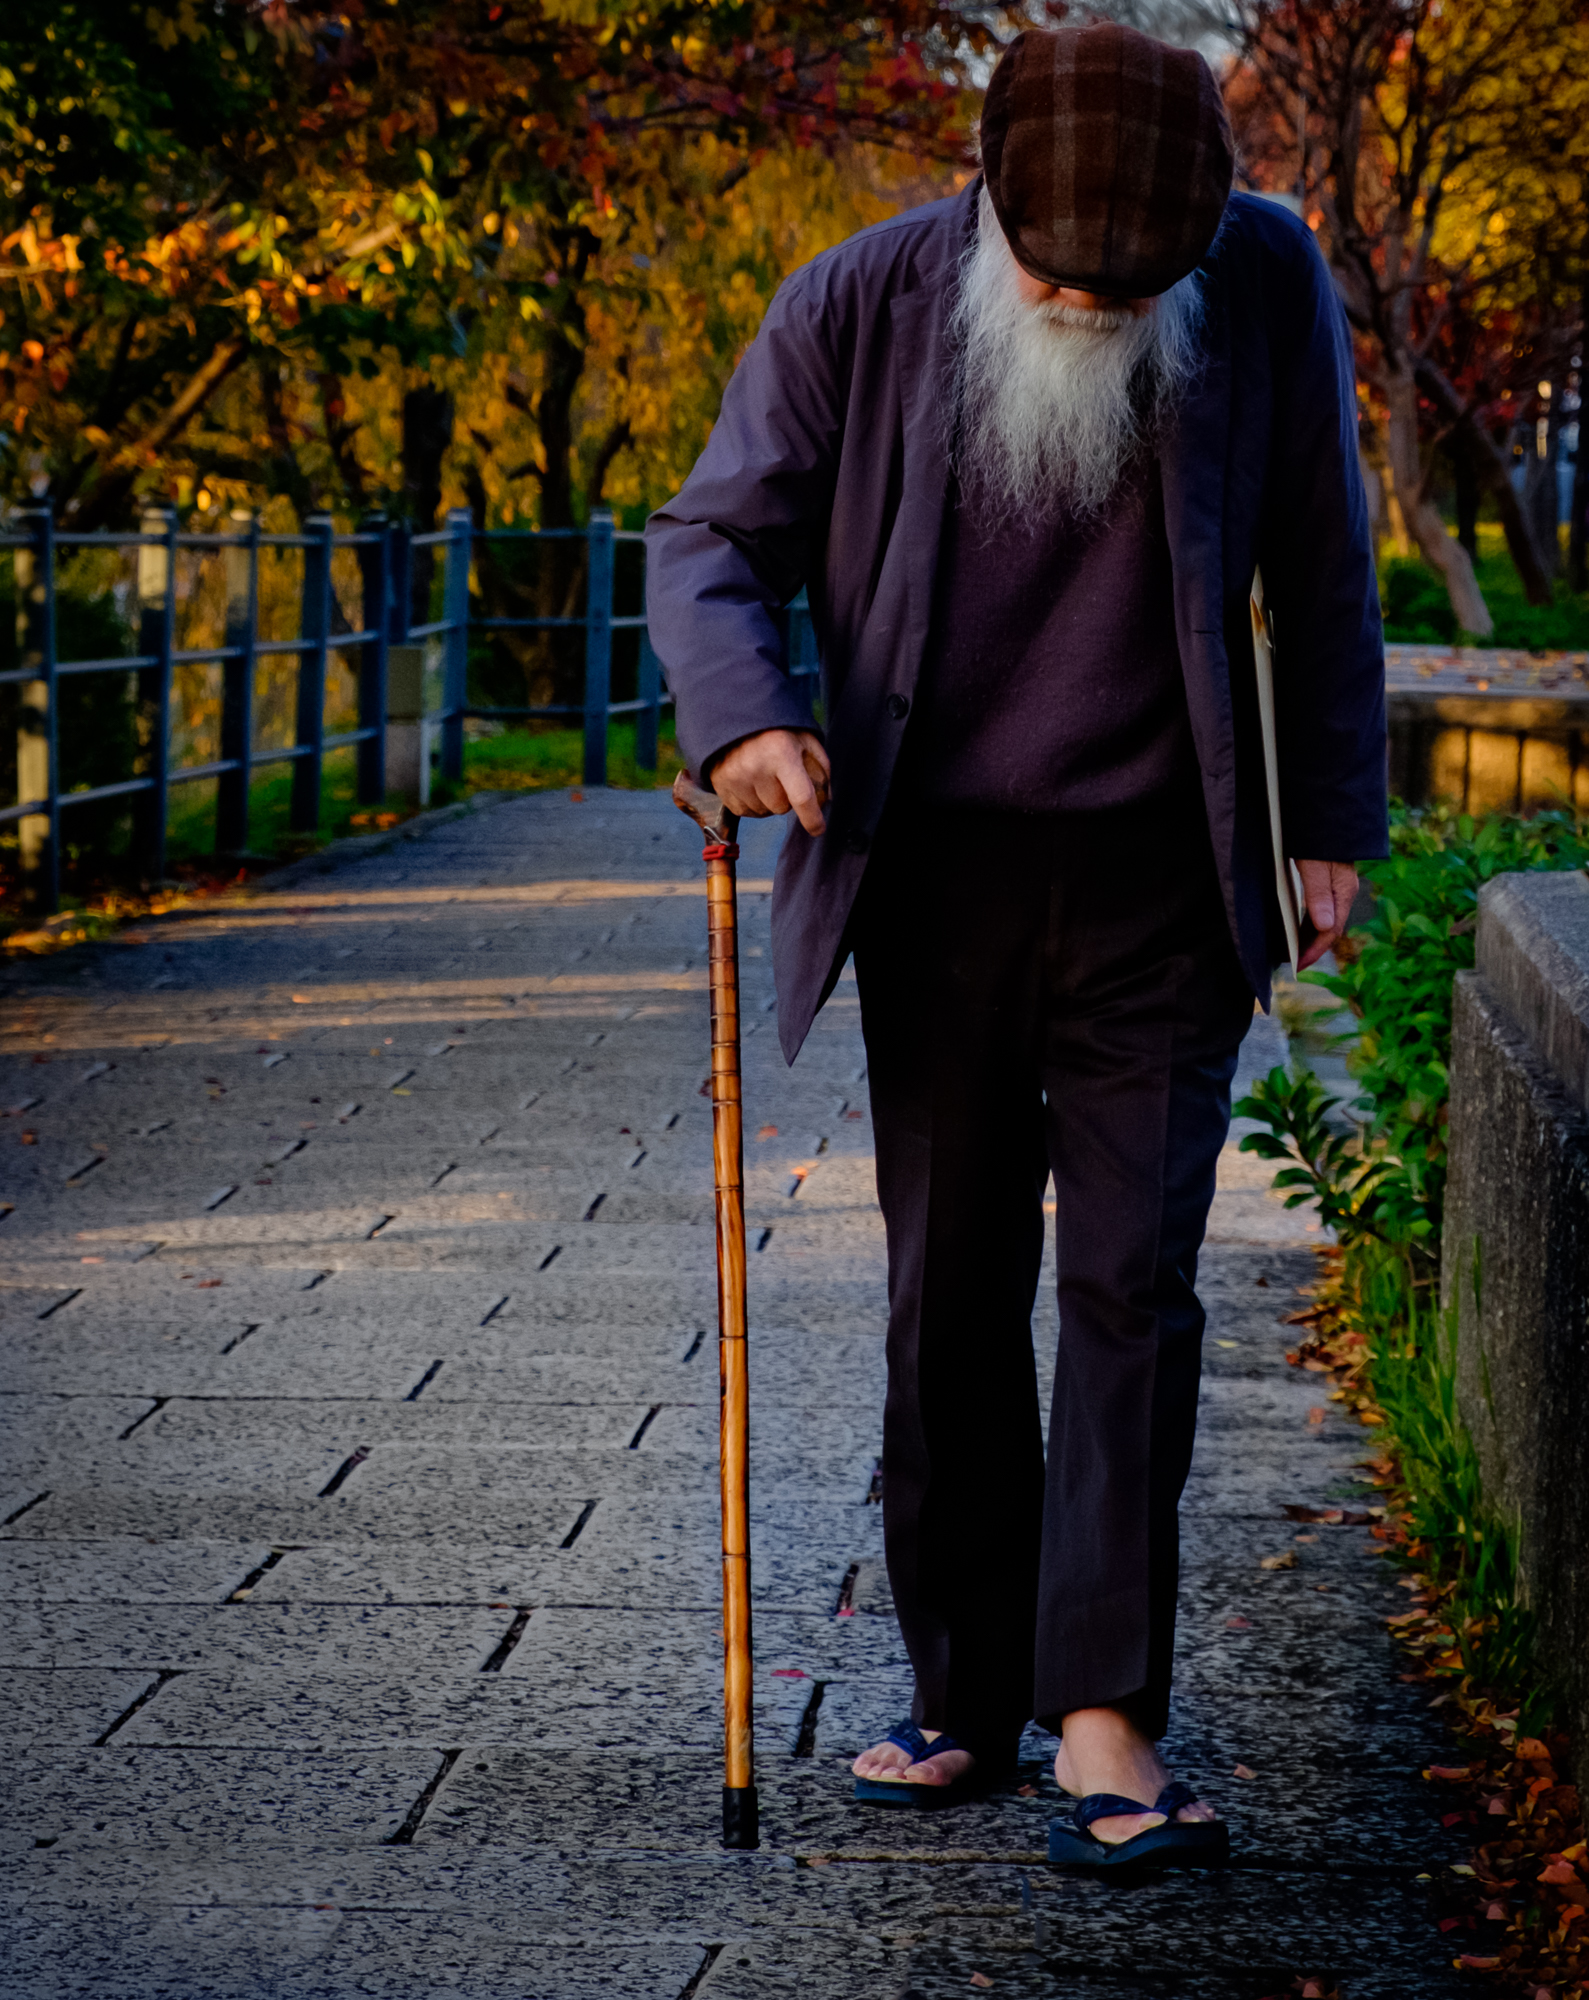 Old Man Kyoto – Fujifilm X-T10 with XF18-55mmF2.8-4 – 55mm – F5.6 – 1/500sec – ISO800